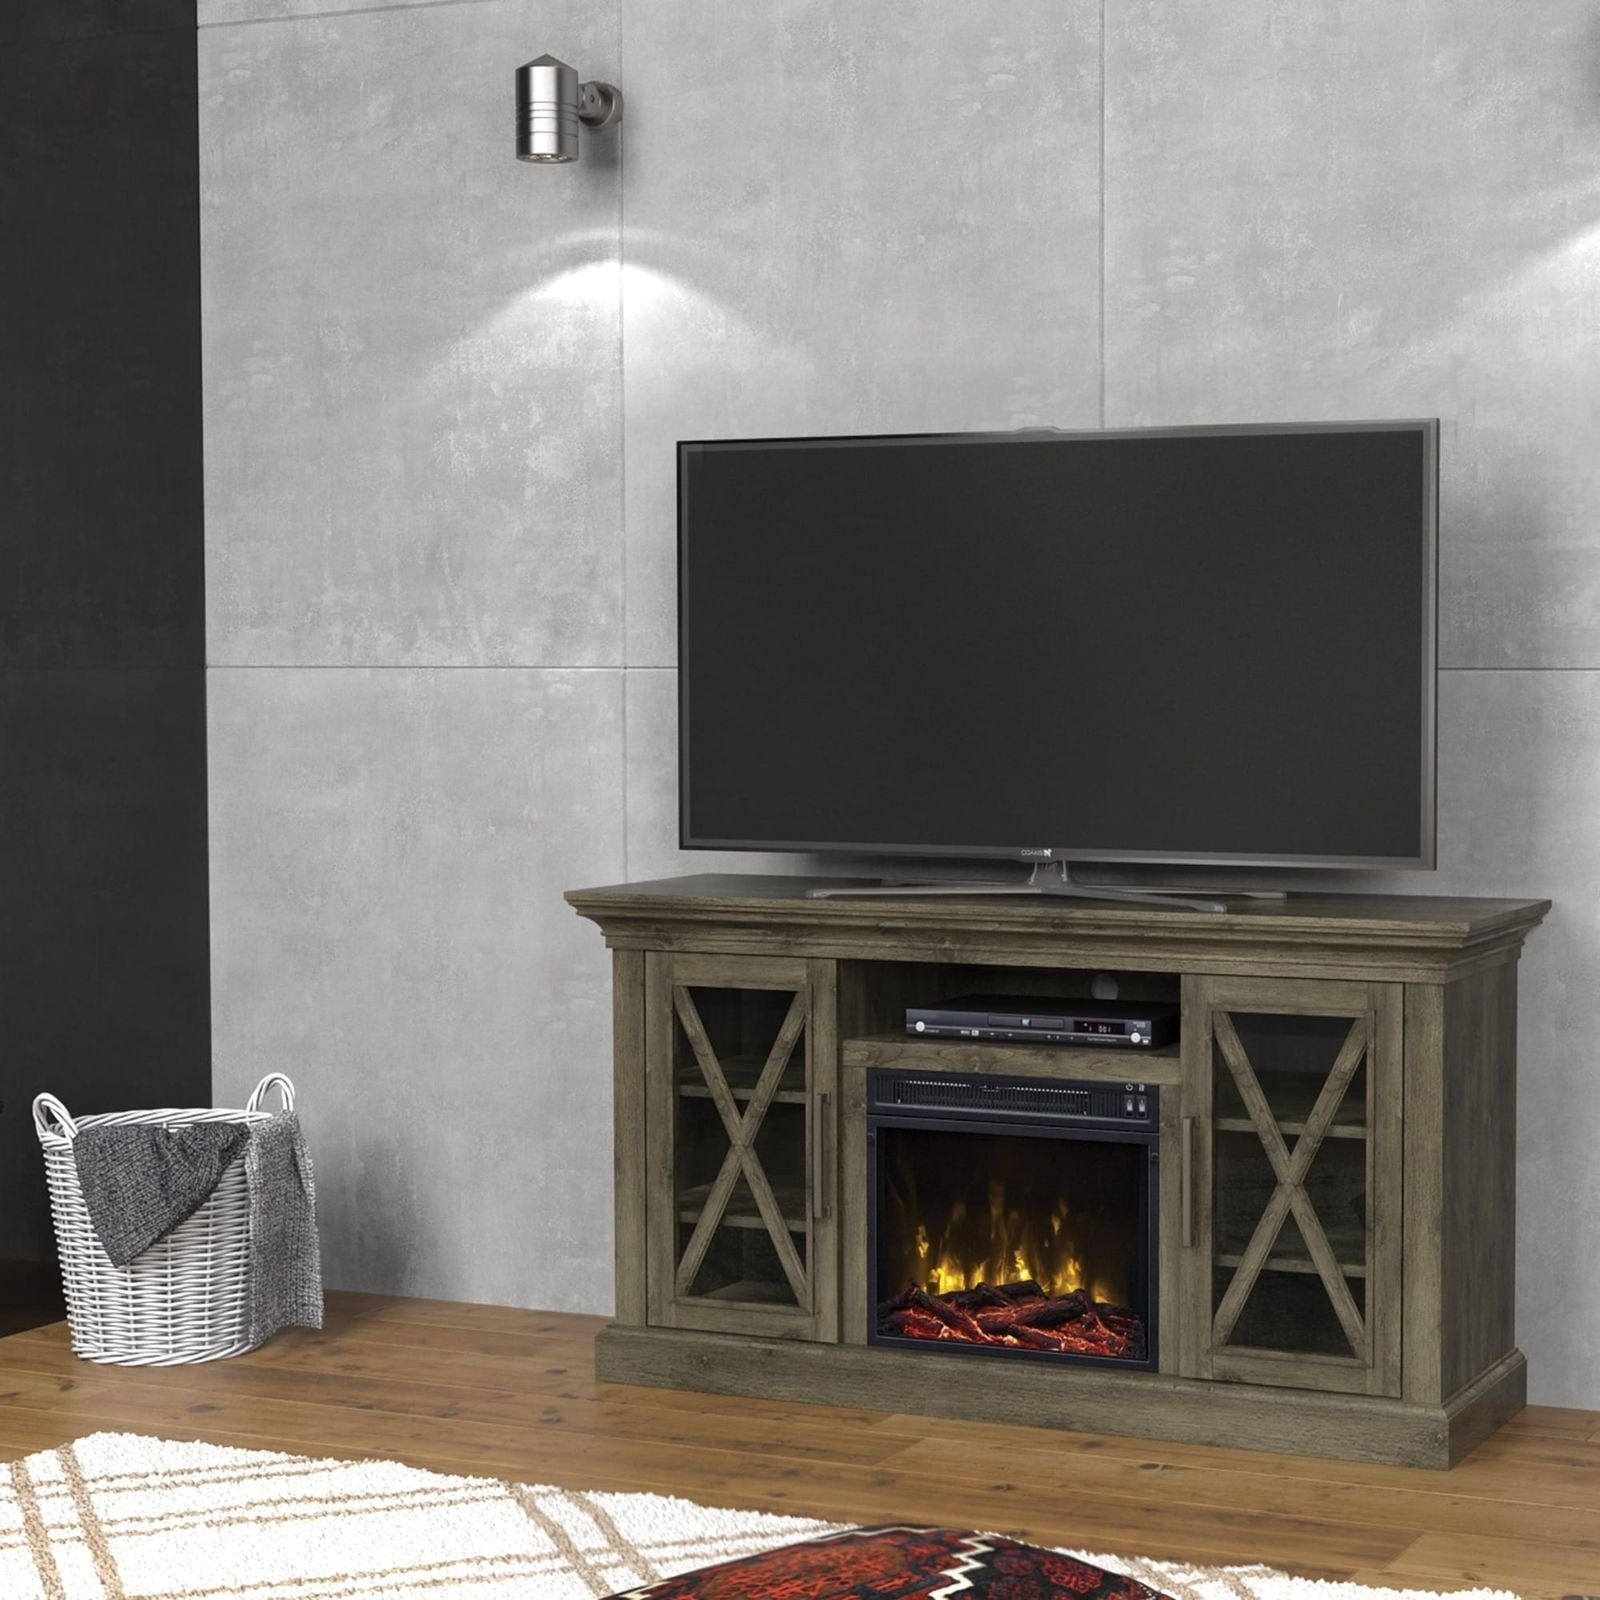 in recessed color heater fireplace ventless inch p astoria wall multi electric mounted built